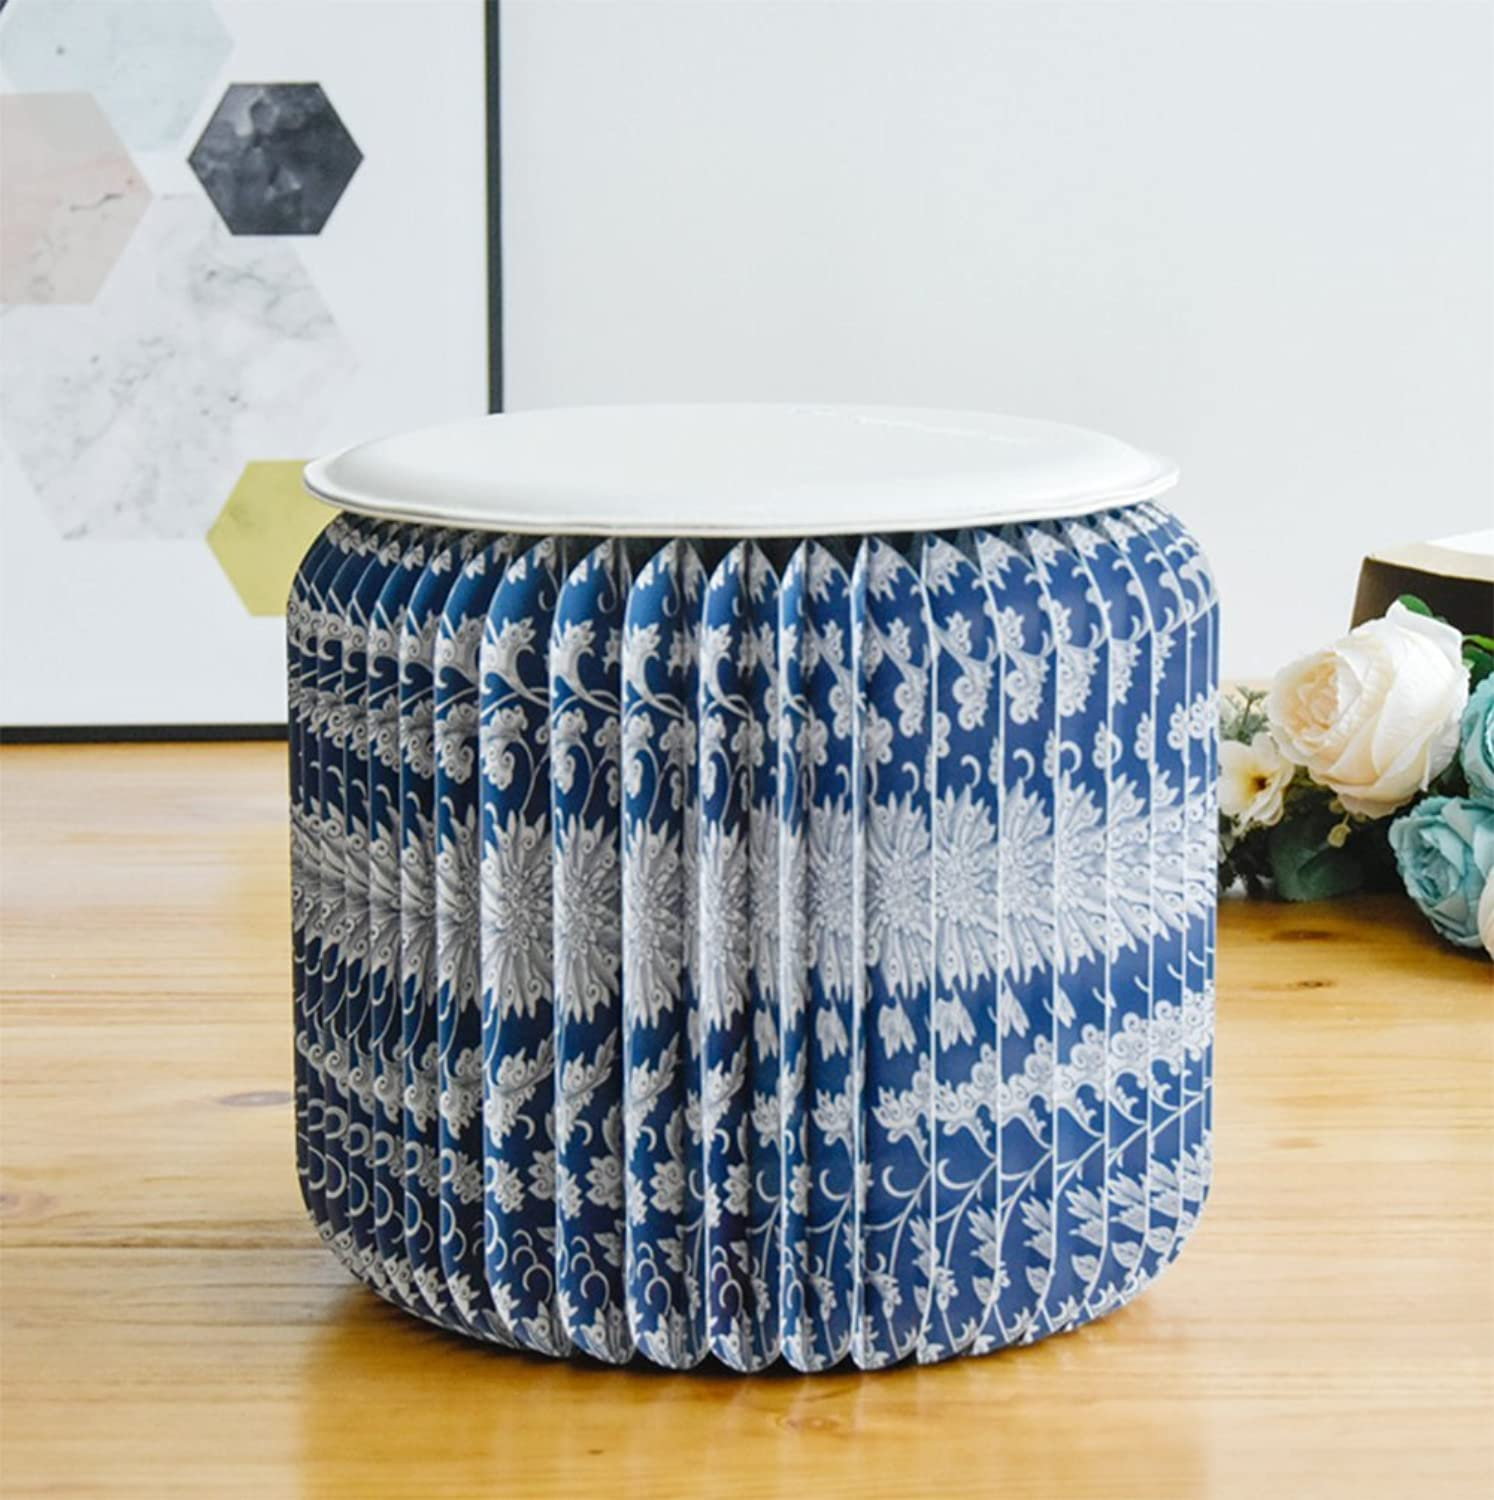 Paper Stool Stool Creative Low Stool Fashion Folding Portable Stool Design Home Living Room Short Coffee Table Stool Furniture